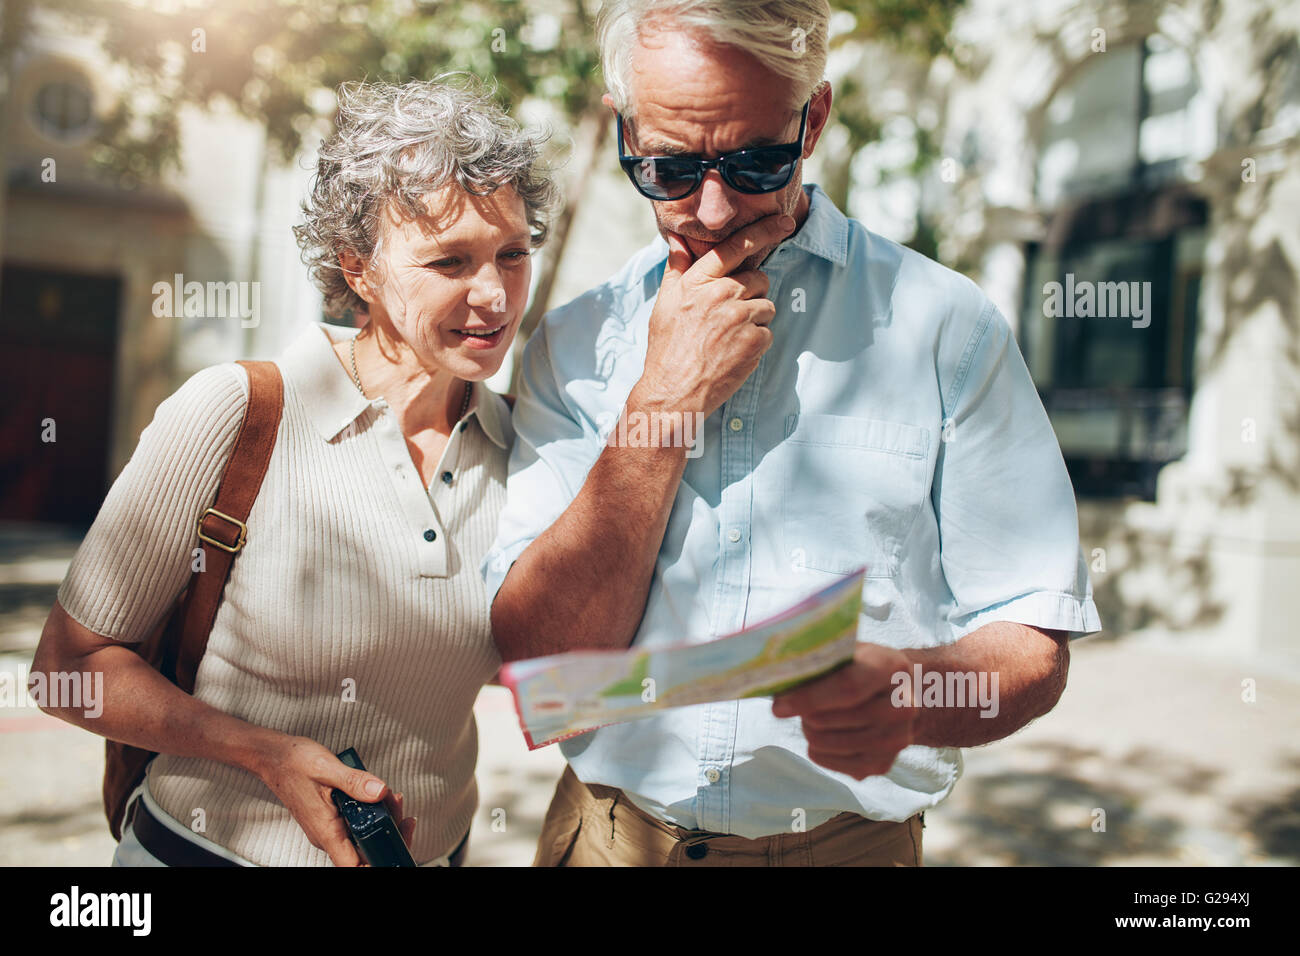 Senior couple looking at a map while sightseeing. Couple of mature tourist using city map on their vacation. - Stock Image